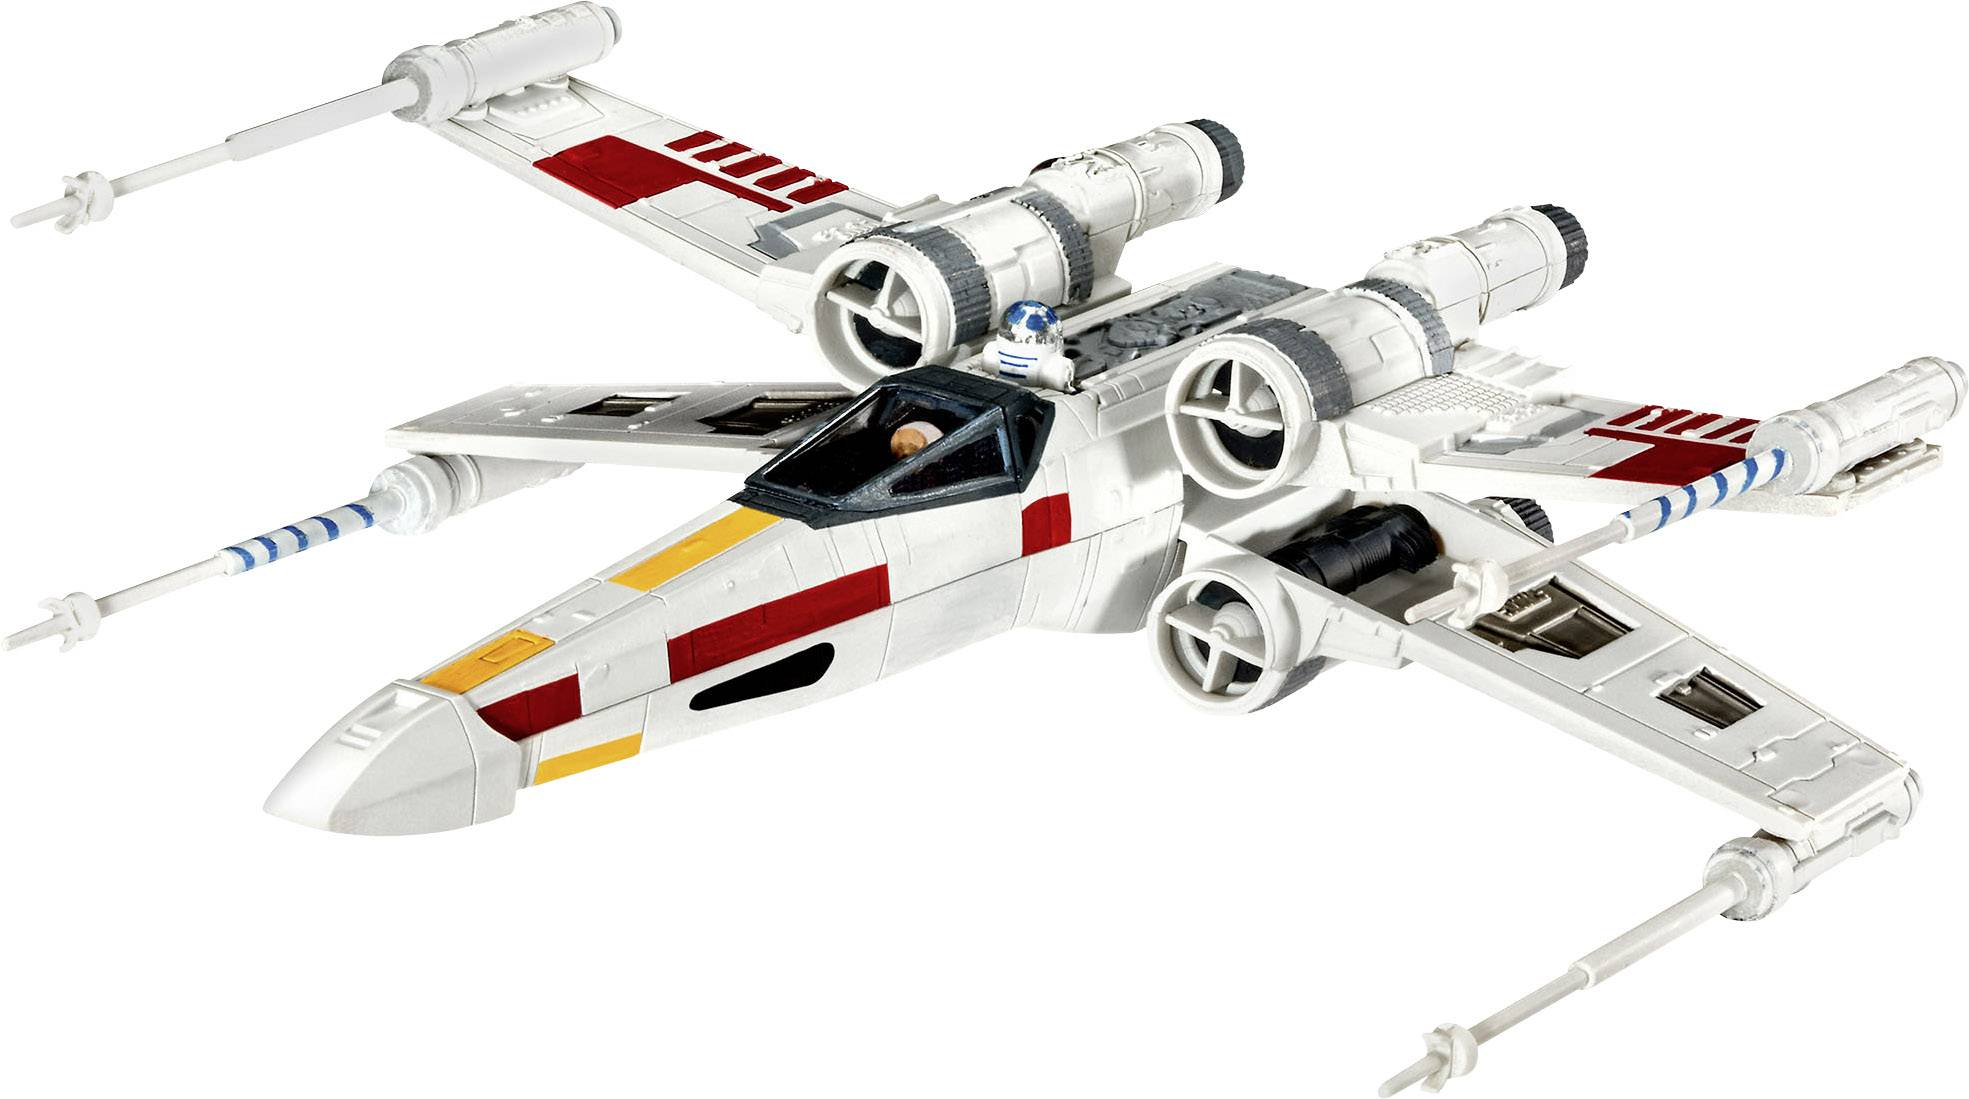 Sci-fi model, stavebnice Revell 03601 Star Wars X-Wing Fighter